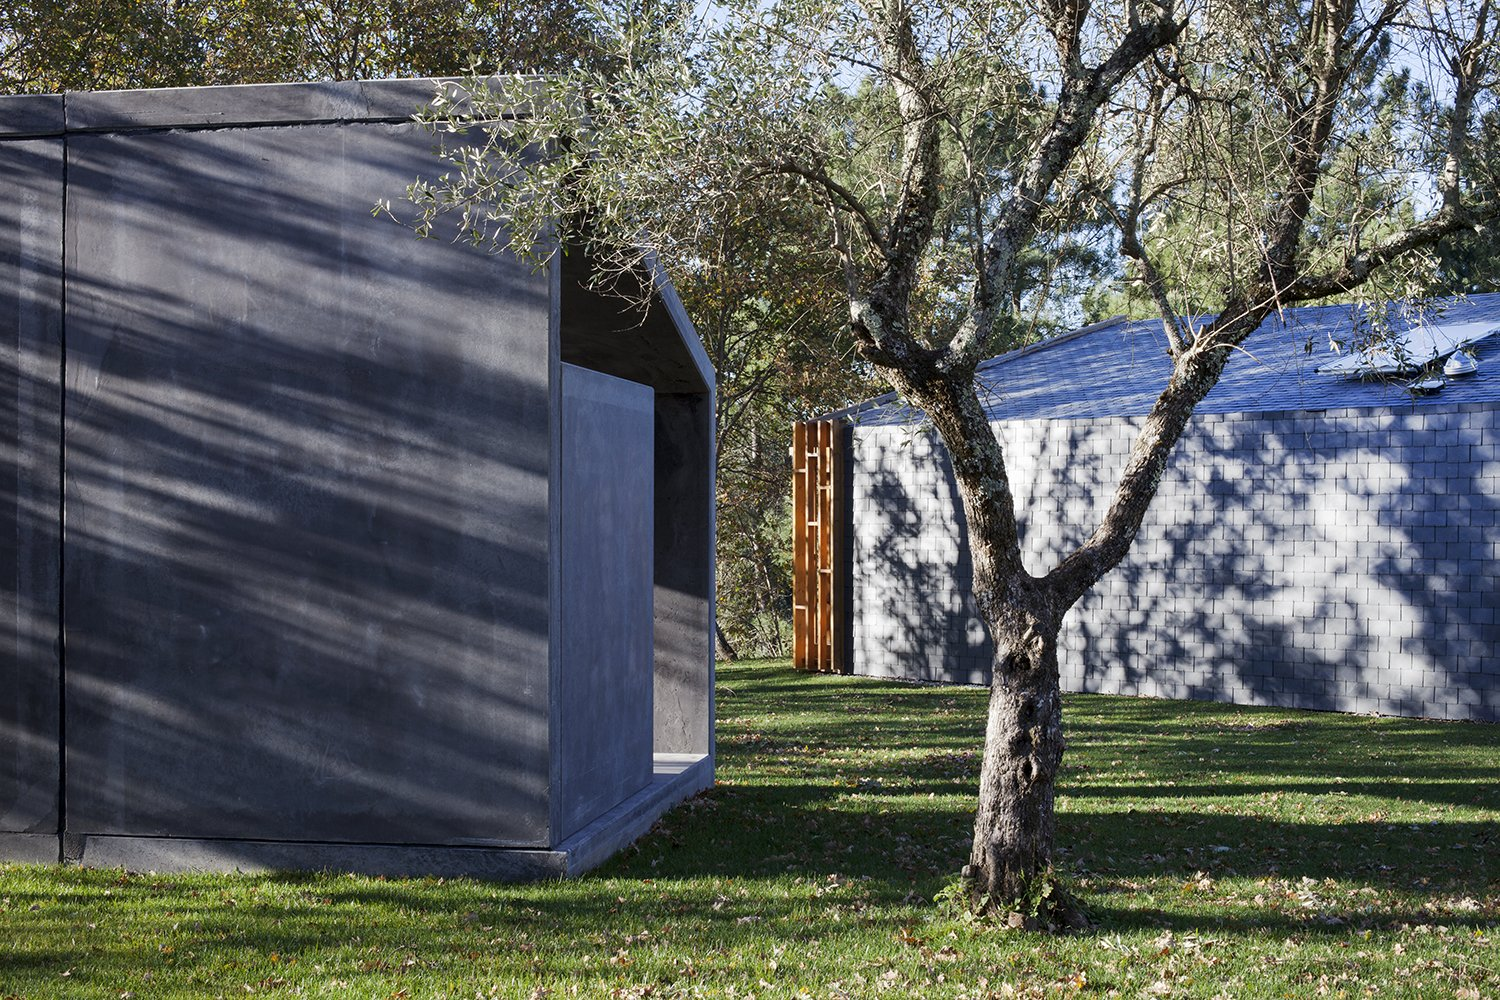 Tagged: Outdoor, Front Yard, Side Yard, Garden, Trees, Grass, and Concrete Patio, Porch, Deck.  GOMOS #1 by Alban Wagener